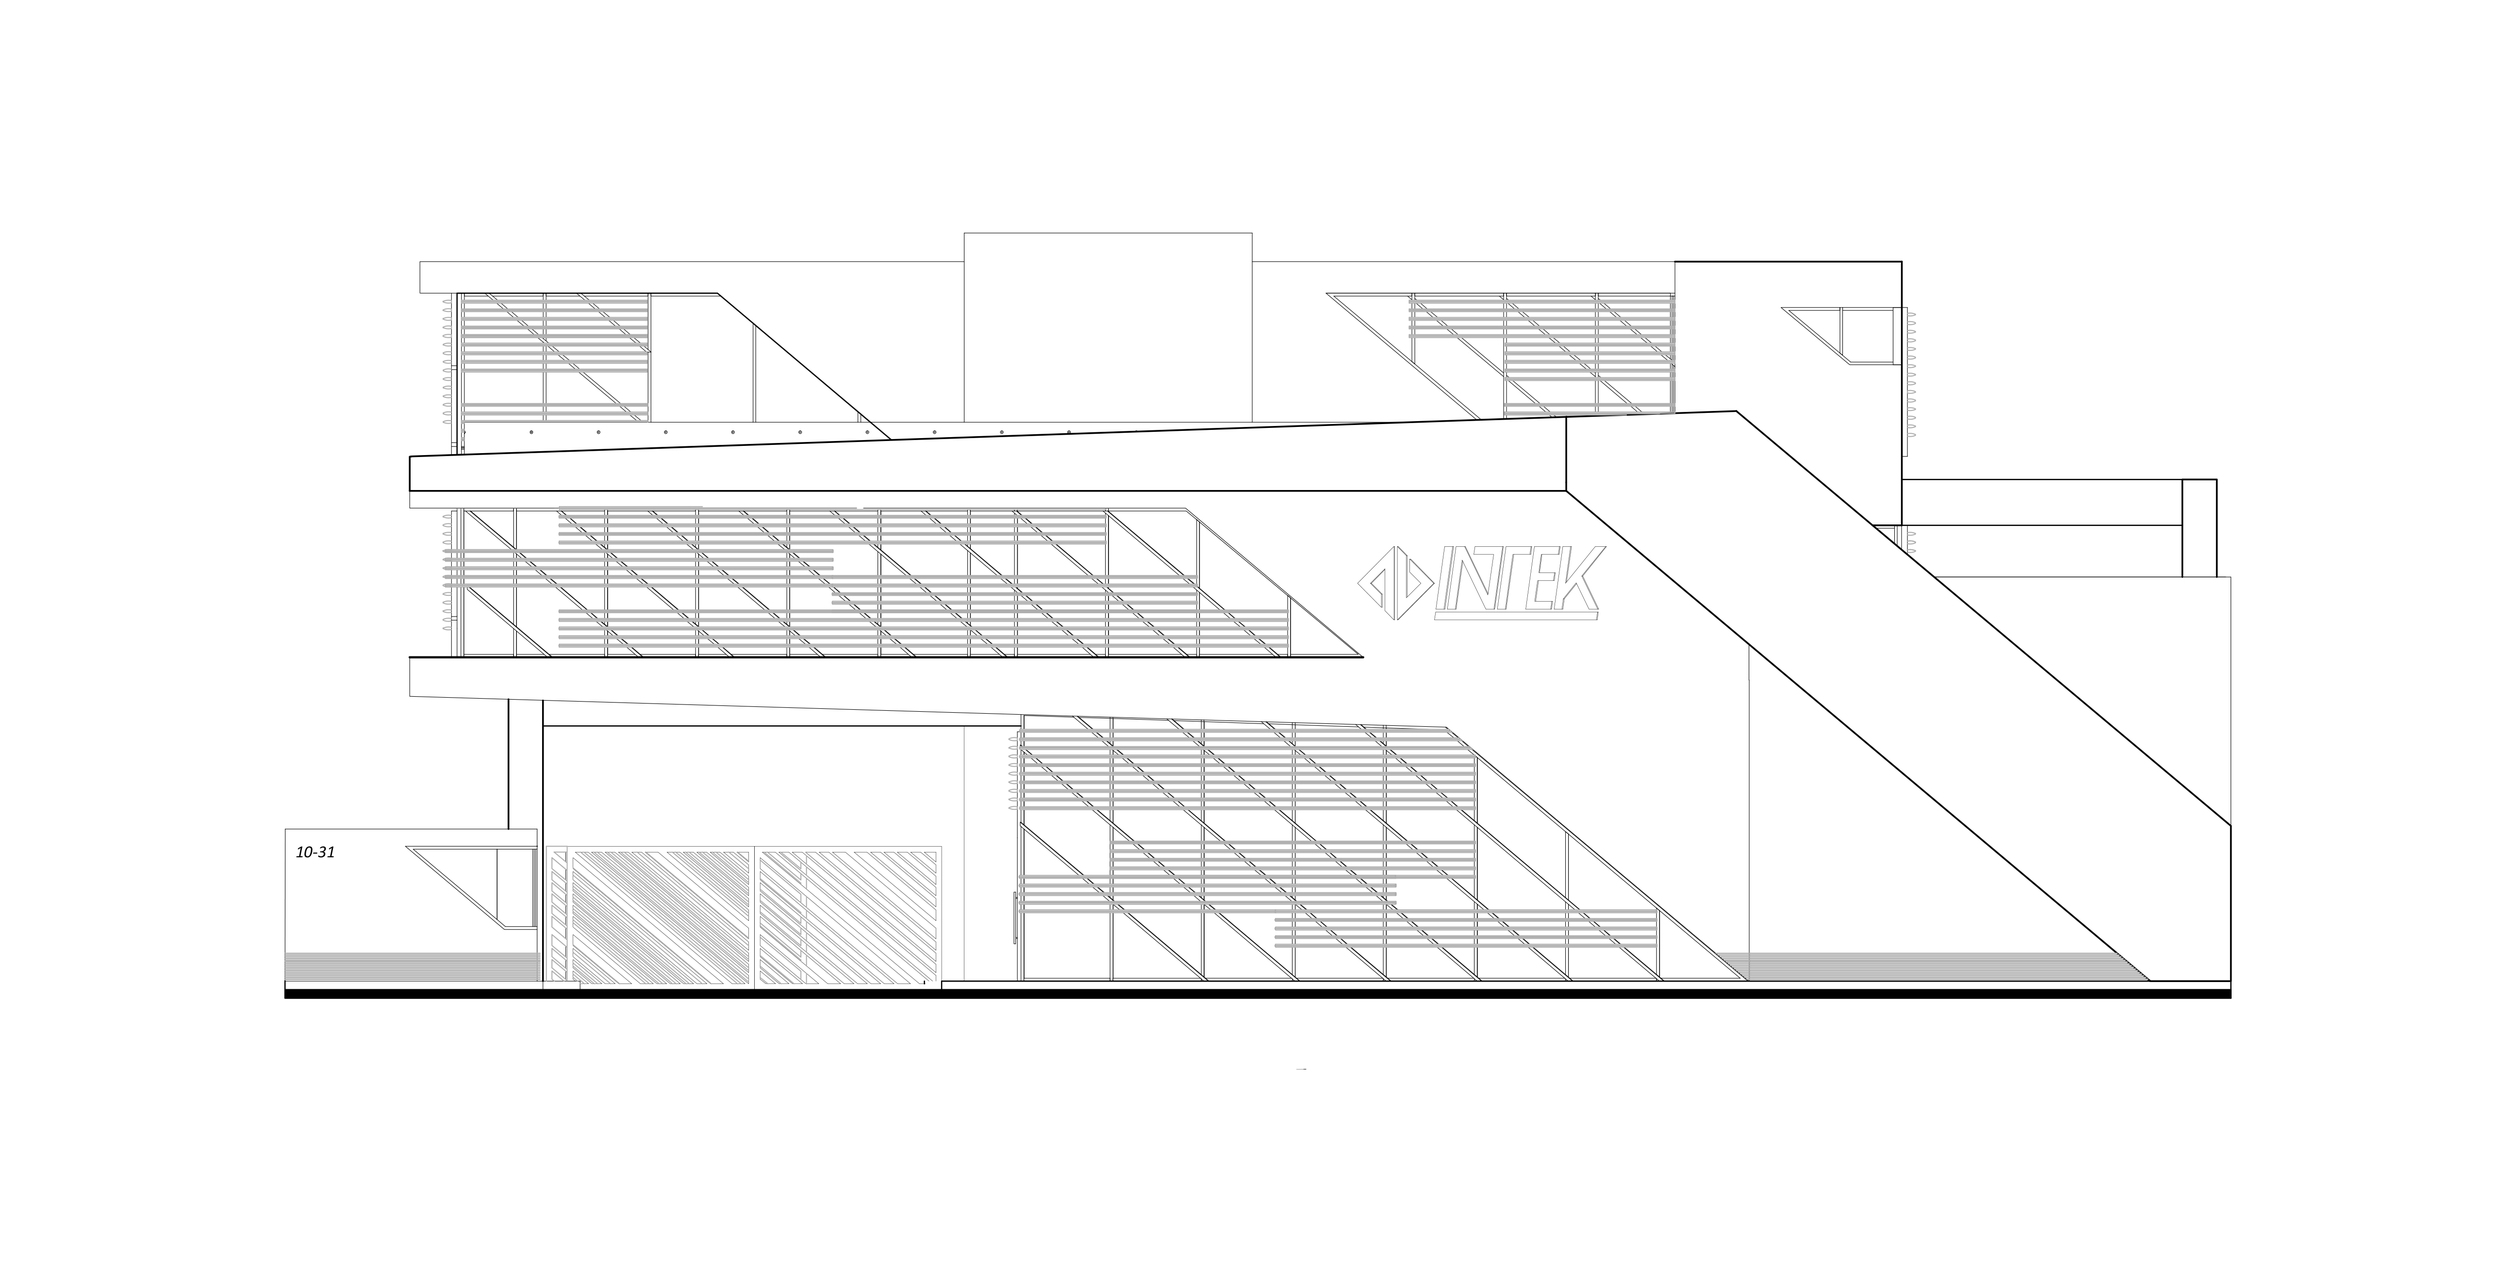 The finalised elevation - notice how the angles have been incorporated throughout.